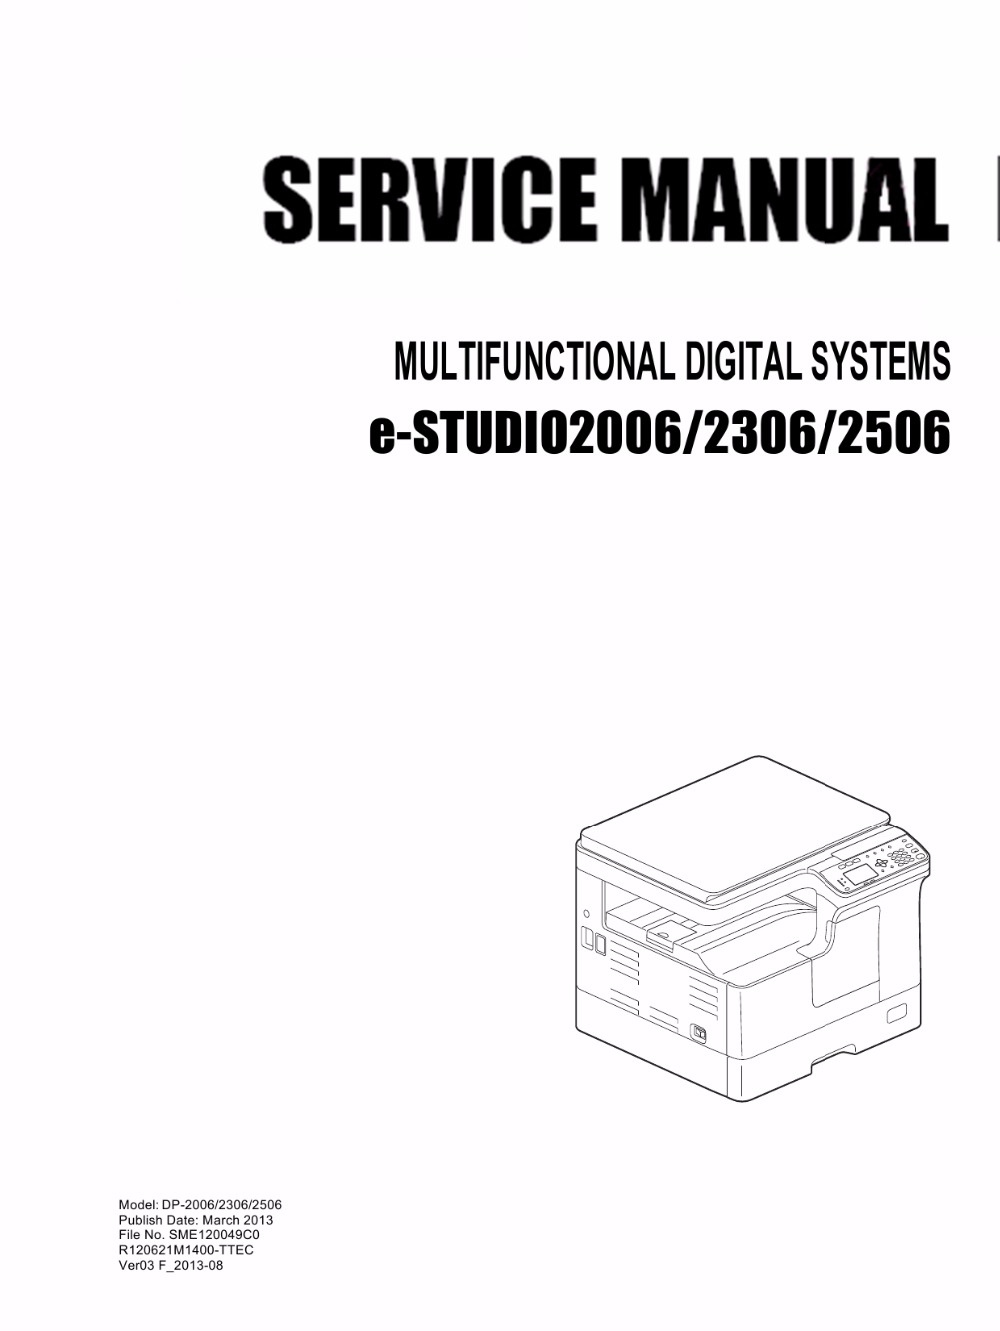 The service manual is in Chinese.